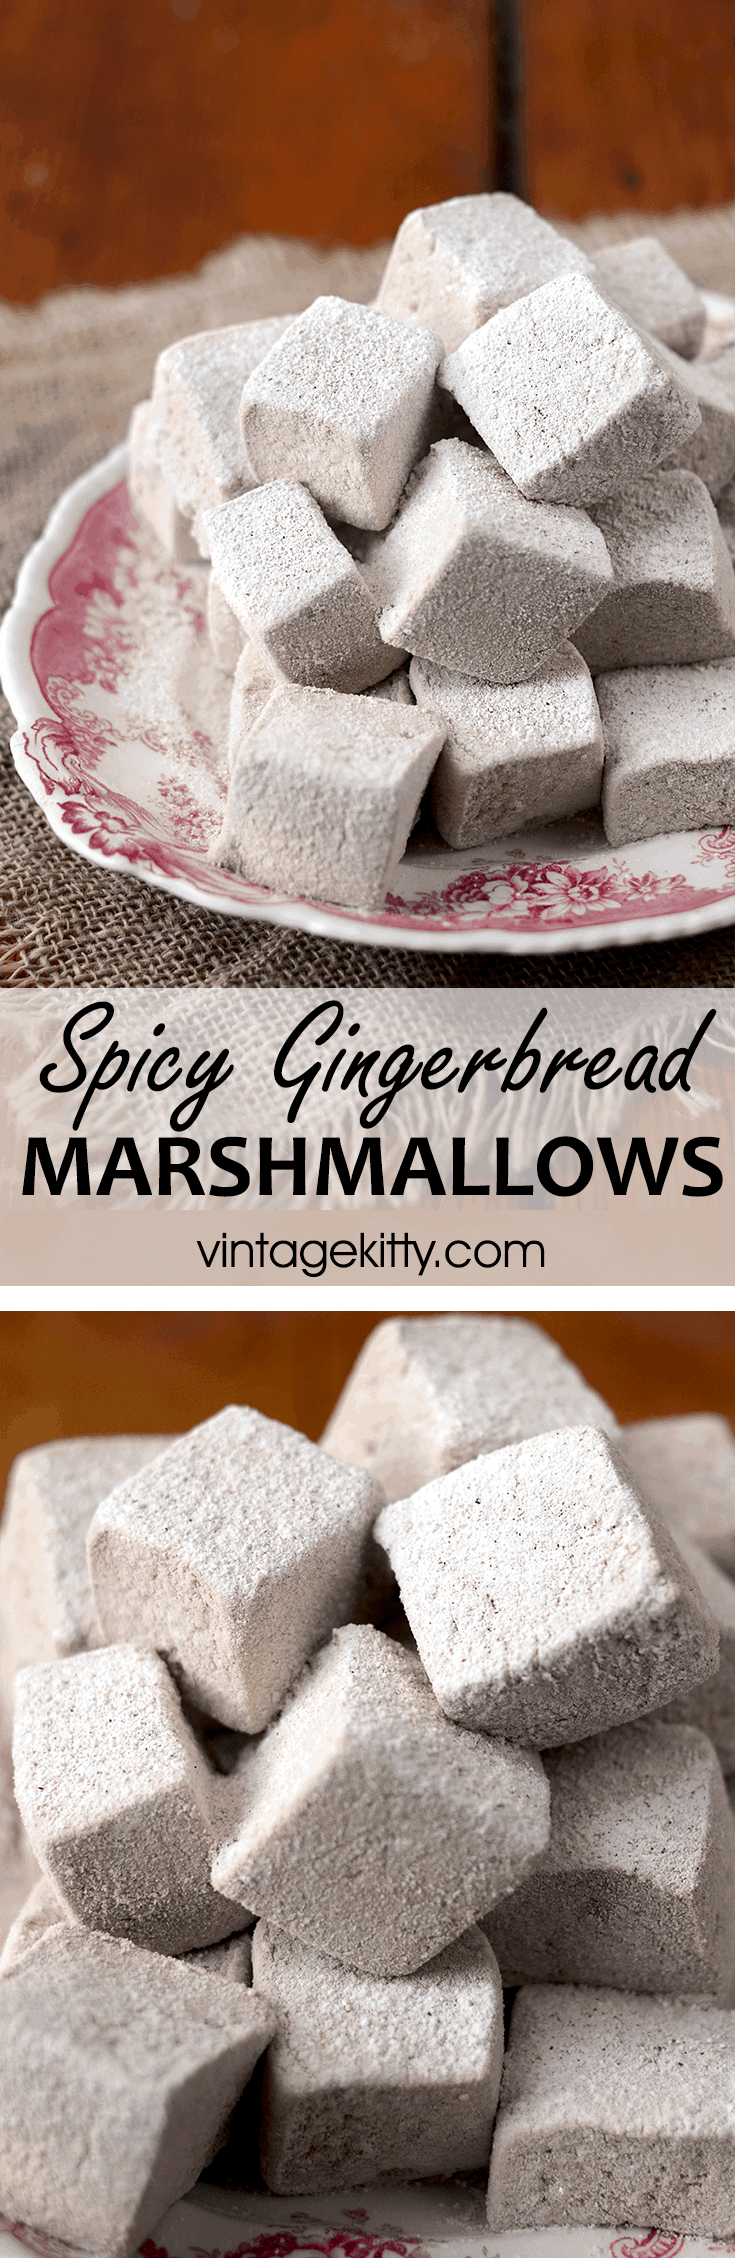 Gingerbread Marshmallow Pin - Spicy Gingerbread Marshmallows